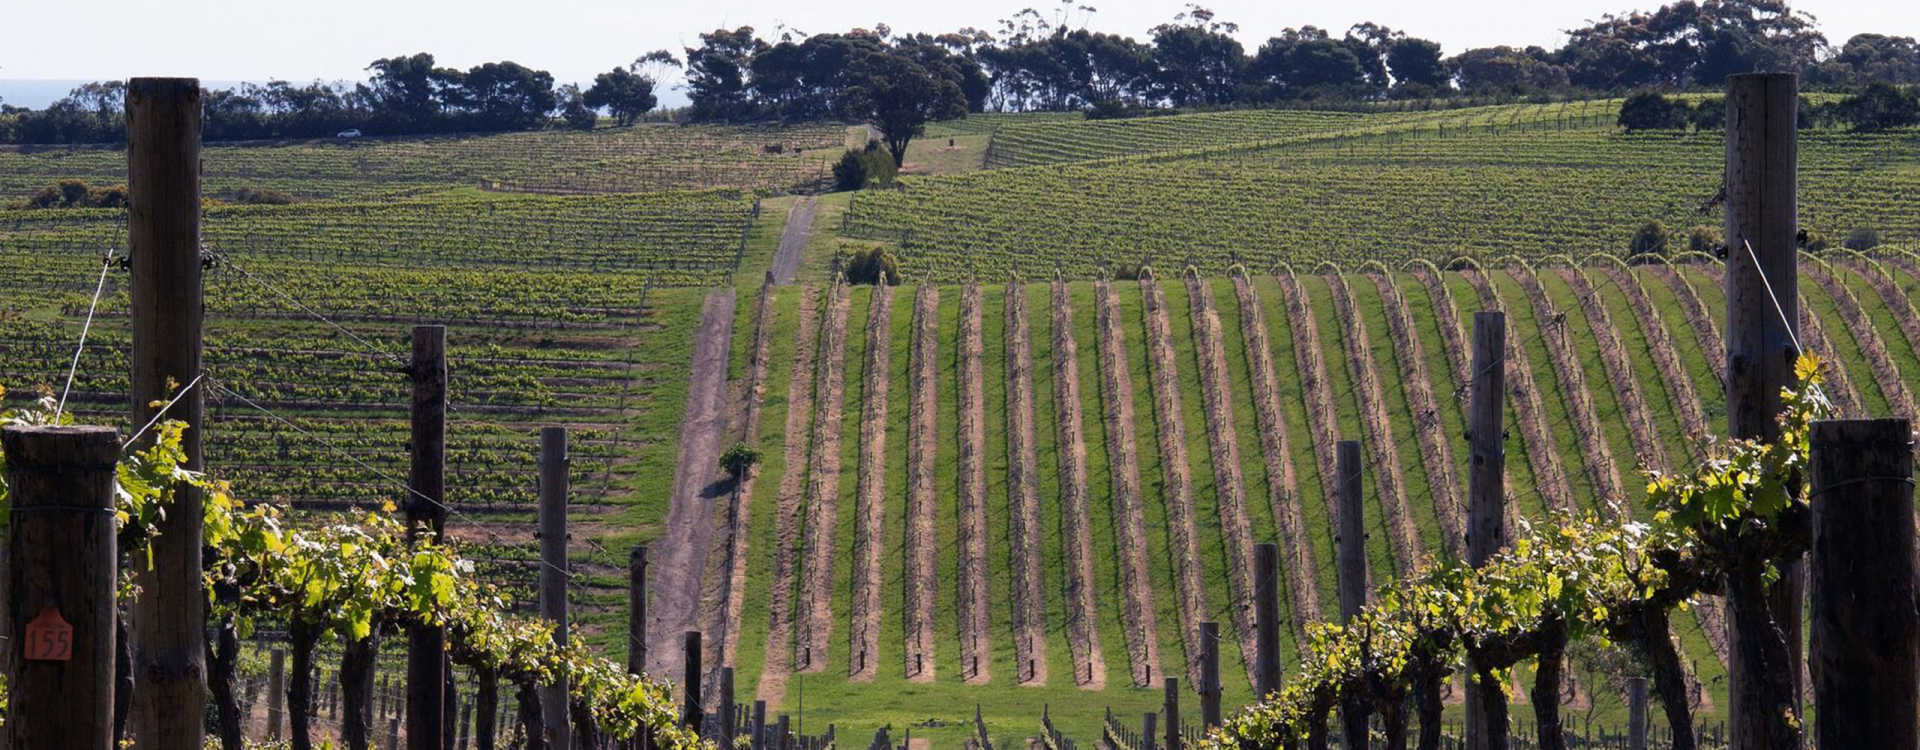 Image for Eden Valley Wine Barossa, Australia content section